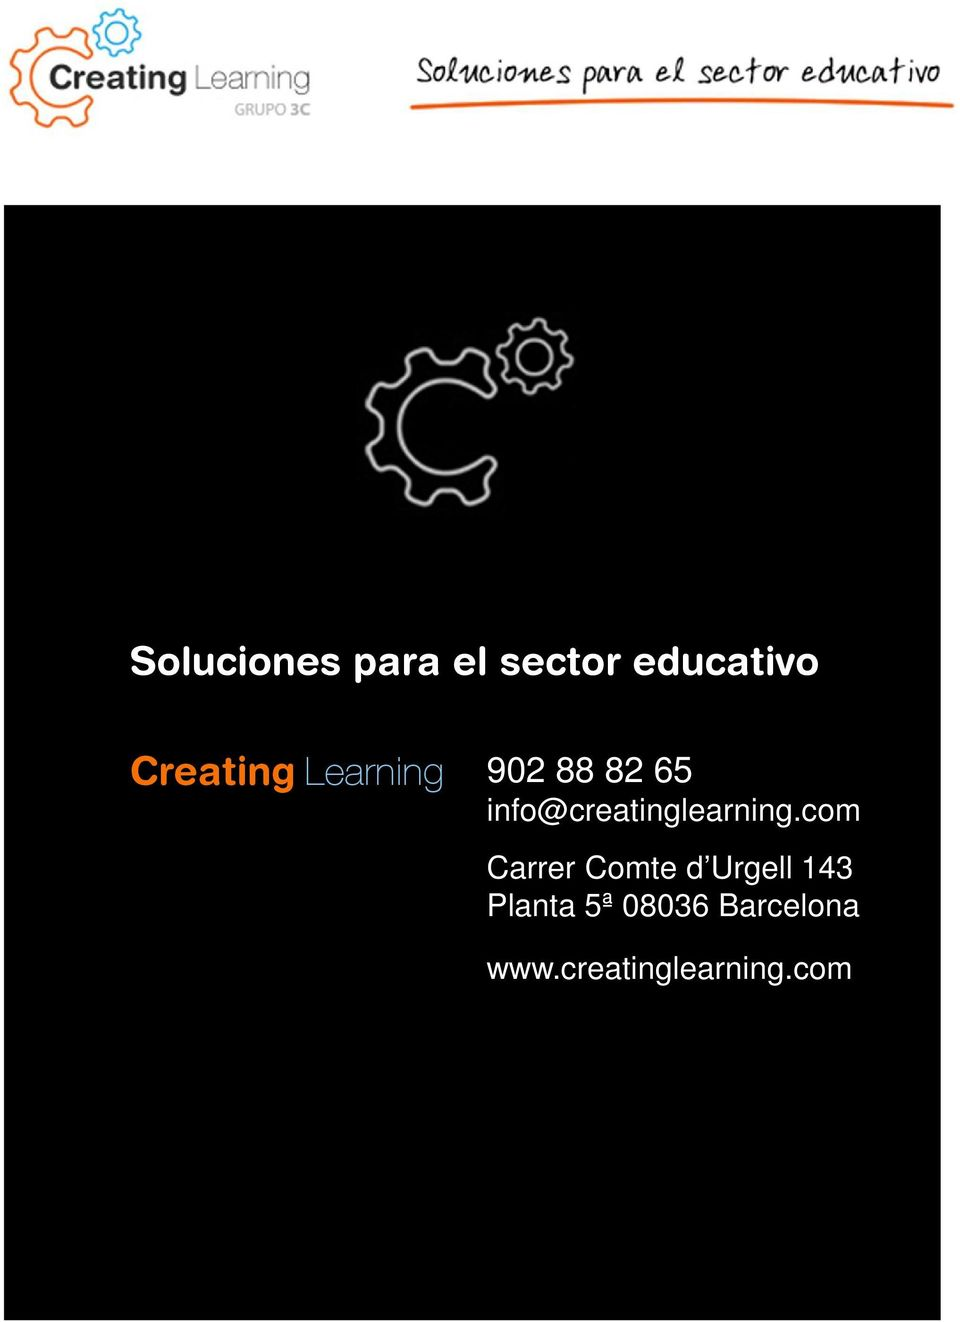 info@creatinglearning.